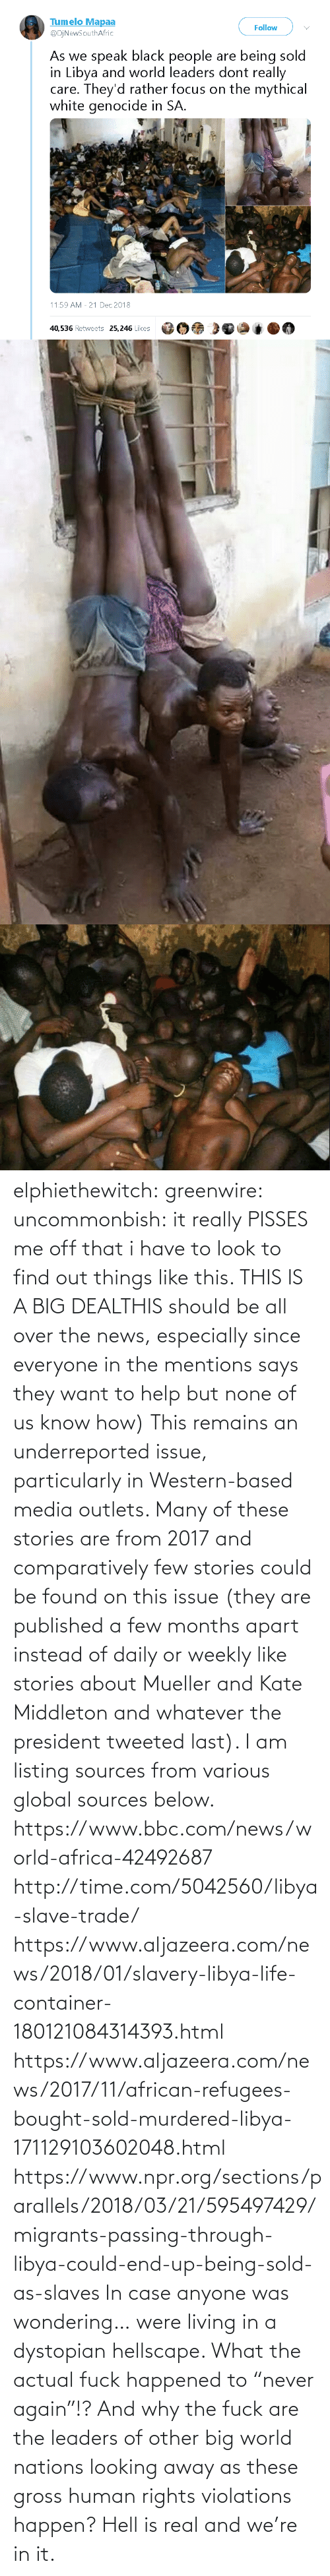 "About: elphiethewitch: greenwire:  uncommonbish:  it really PISSES me off that i have to look to find out things like this. THIS IS A BIG DEALTHIS should be all over the news, especially since everyone in the mentions says they want to help but none of us know how)  This remains an underreported issue, particularly in Western-based media outlets. Many of these stories are from 2017 and comparatively few stories could be found on this issue (they are published a few months apart instead of daily or weekly like stories about Mueller and Kate Middleton and whatever the president tweeted last). I am listing sources from various global sources below.  https://www.bbc.com/news/world-africa-42492687 http://time.com/5042560/libya-slave-trade/ https://www.aljazeera.com/news/2018/01/slavery-libya-life-container-180121084314393.html https://www.aljazeera.com/news/2017/11/african-refugees-bought-sold-murdered-libya-171129103602048.html https://www.npr.org/sections/parallels/2018/03/21/595497429/migrants-passing-through-libya-could-end-up-being-sold-as-slaves   In case anyone was wondering… were living in a dystopian hellscape.  What the actual fuck happened to ""never again""!? And why the fuck are the leaders of other big world nations looking away as these gross human rights violations happen?  Hell is real and we're in it."